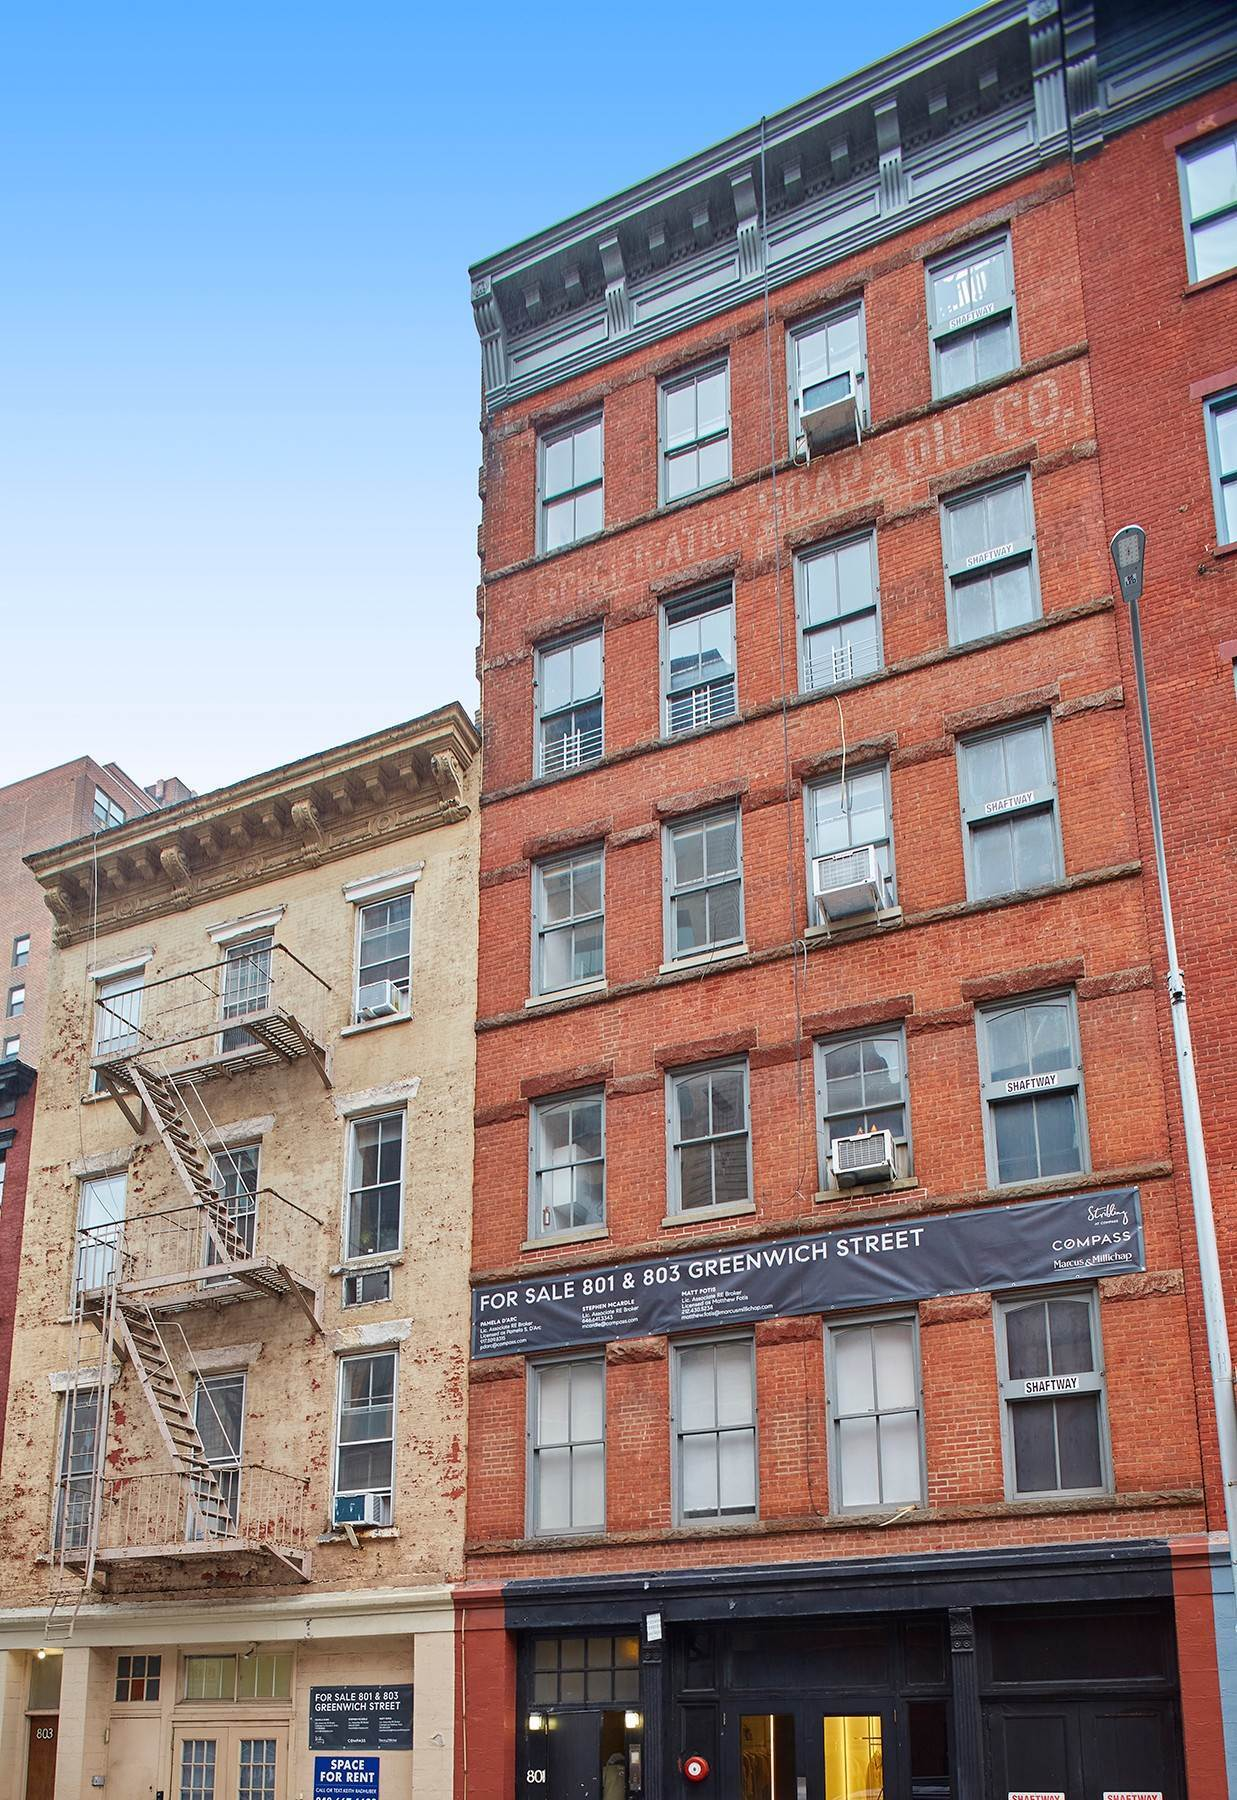 Multi Family Townhouse for Sale at 801-803 Greenwich St New York, New York,10014 United States